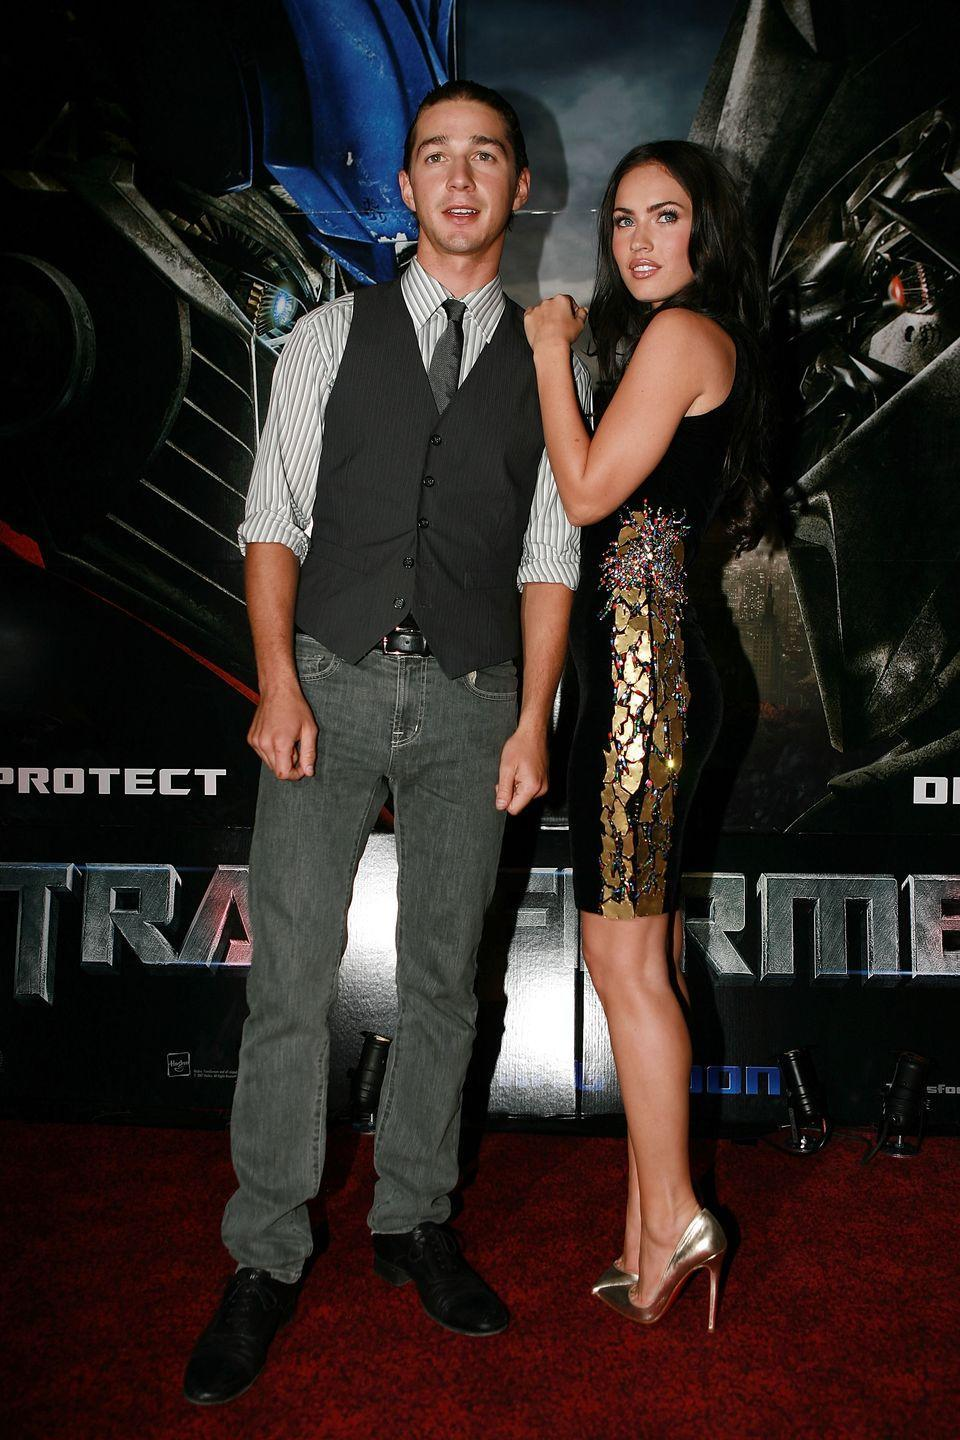 "<p>The pair met on the set of <em>Transformers, </em>and their on-screen chemistry sparked speculation that they were dating in real life. It's unclear whether or not the two were an item during their first or second film together—or if Fox was involved with now-husband Brian Austin Green at the time—but Fox confirmed on <em><a href=""https://www.youtube.com/watch?v=XcAdzkprQyo"" rel=""nofollow noopener"" target=""_blank"" data-ylk=""slk:Watch What Happens Live with Andy Cohen"" class=""link rapid-noclick-resp"">Watch What Happens Live with Andy Cohen</a> </em>that they <em>did </em>in fact date.</p>"